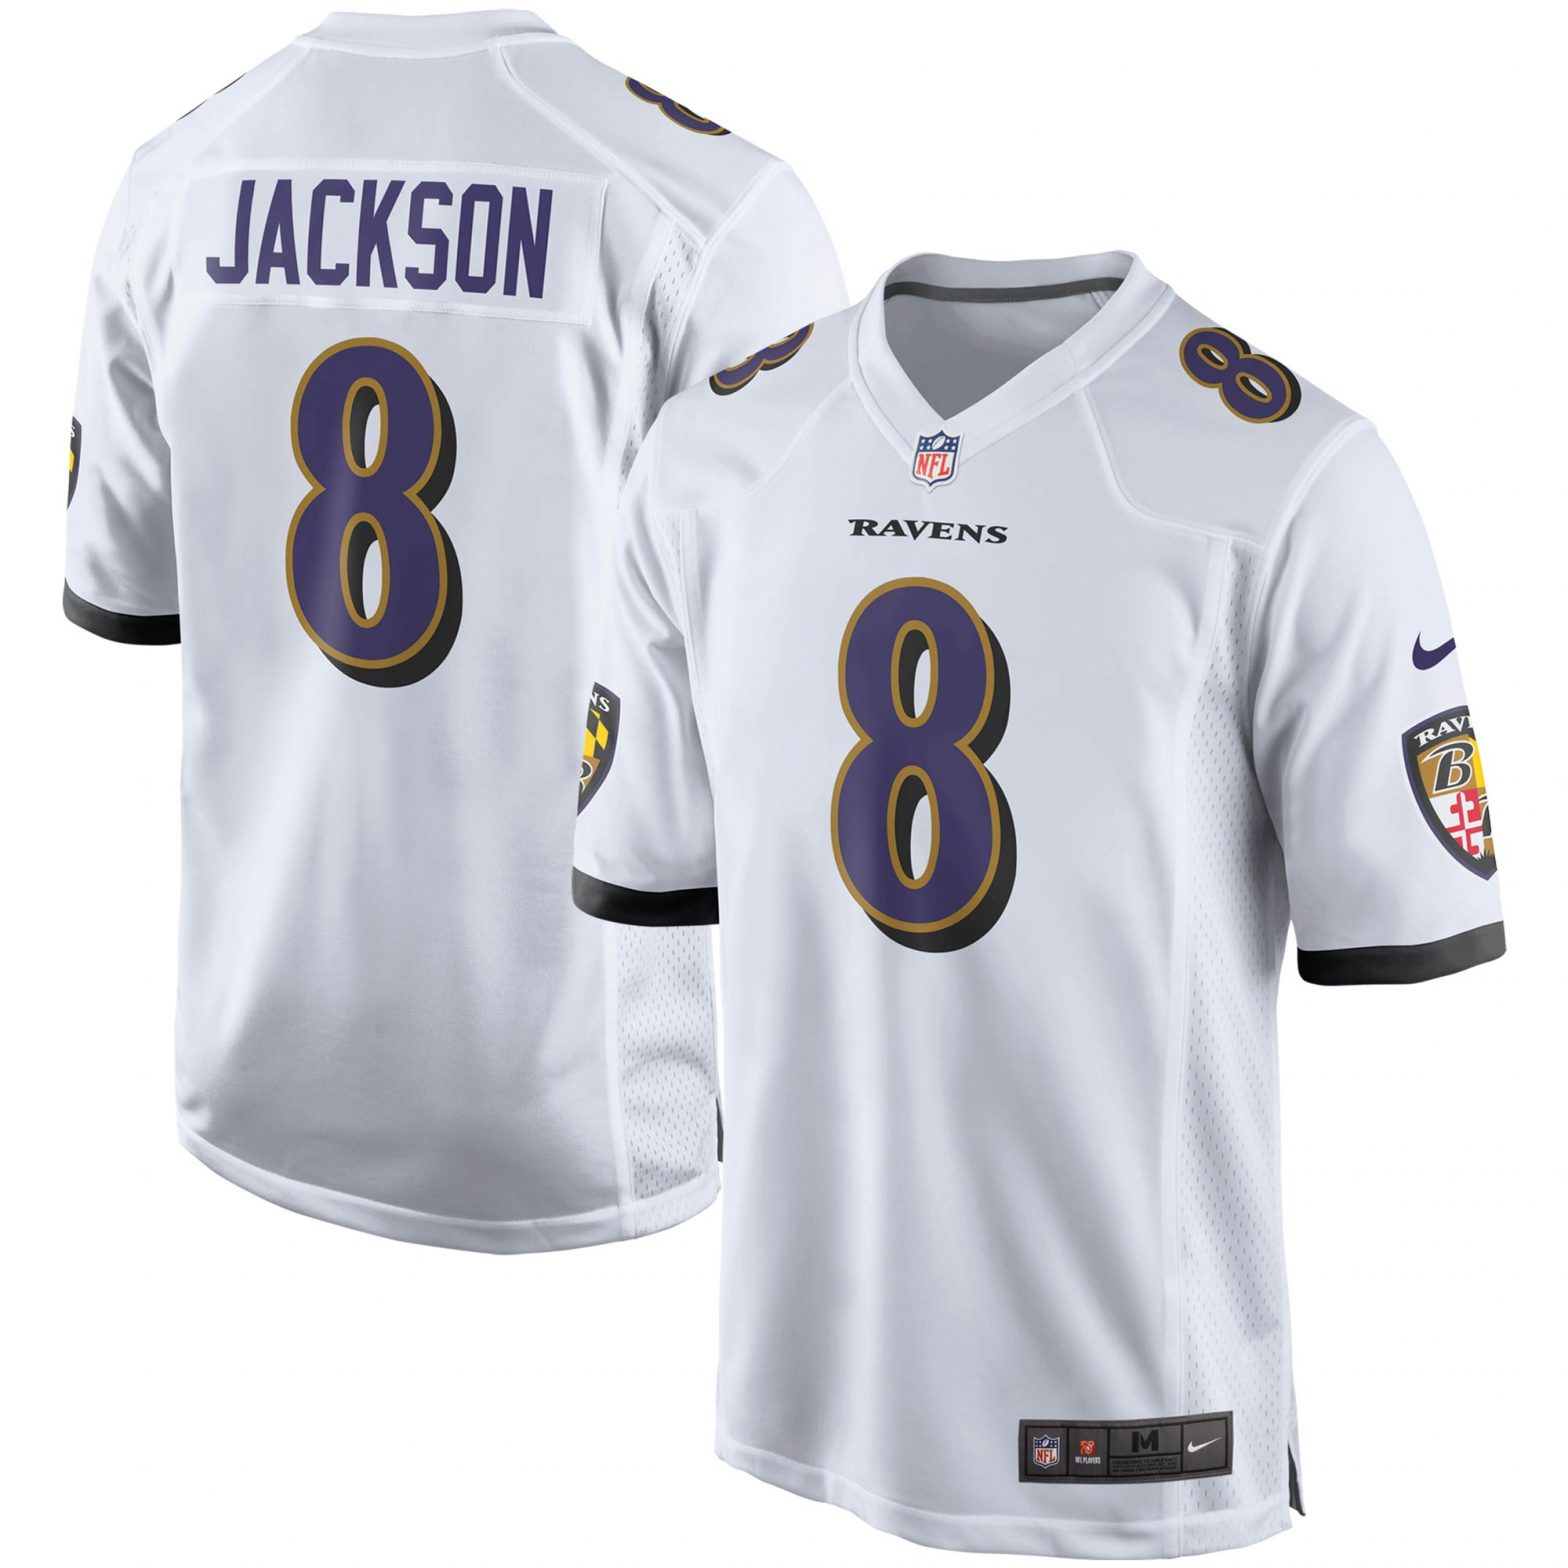 Ravens jerseys Archives - Cheap Jerseys From China, More Buy More ...